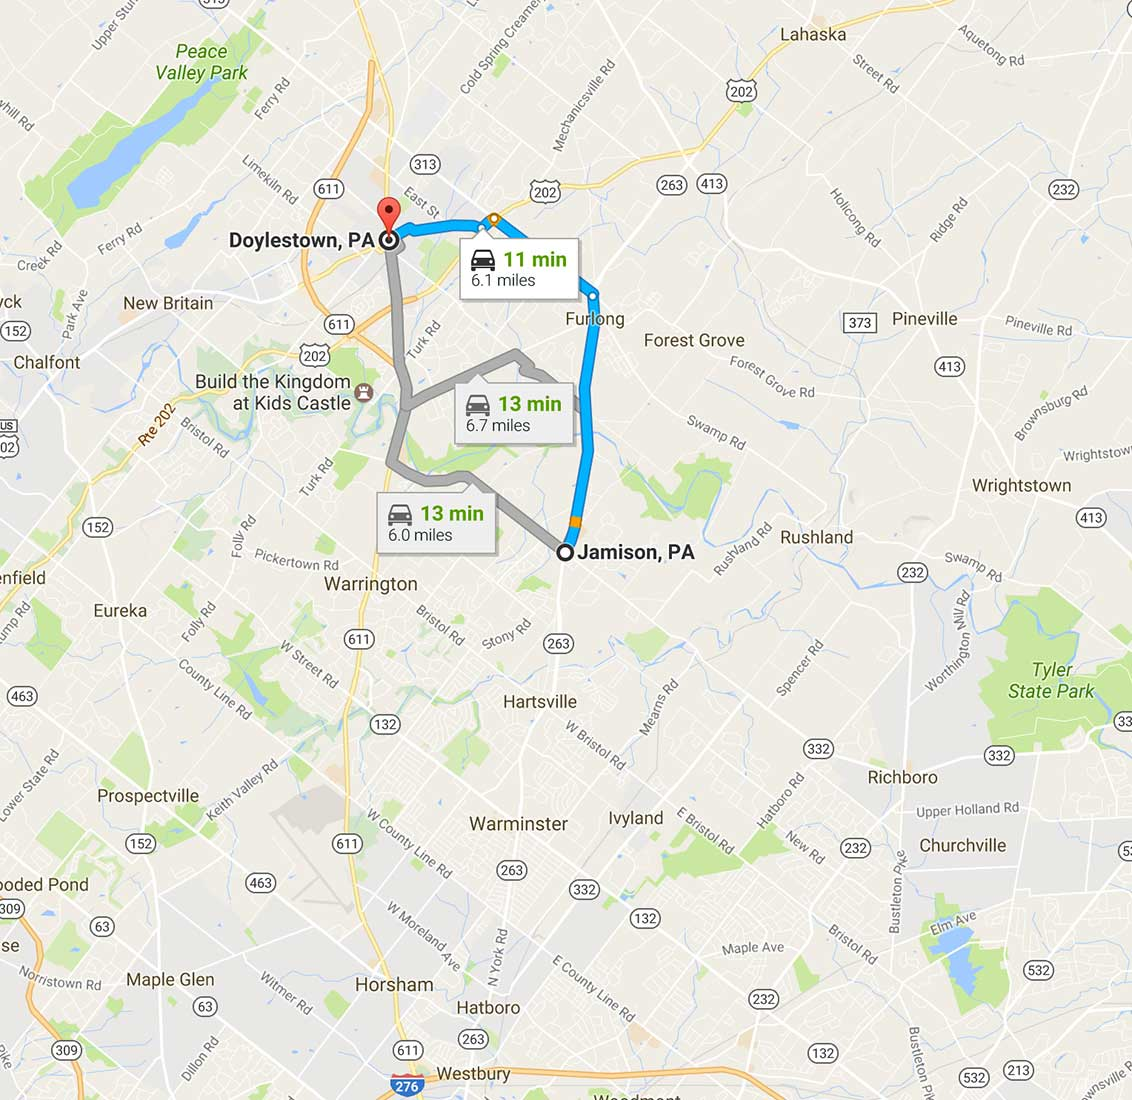 doylestown, pa. service map